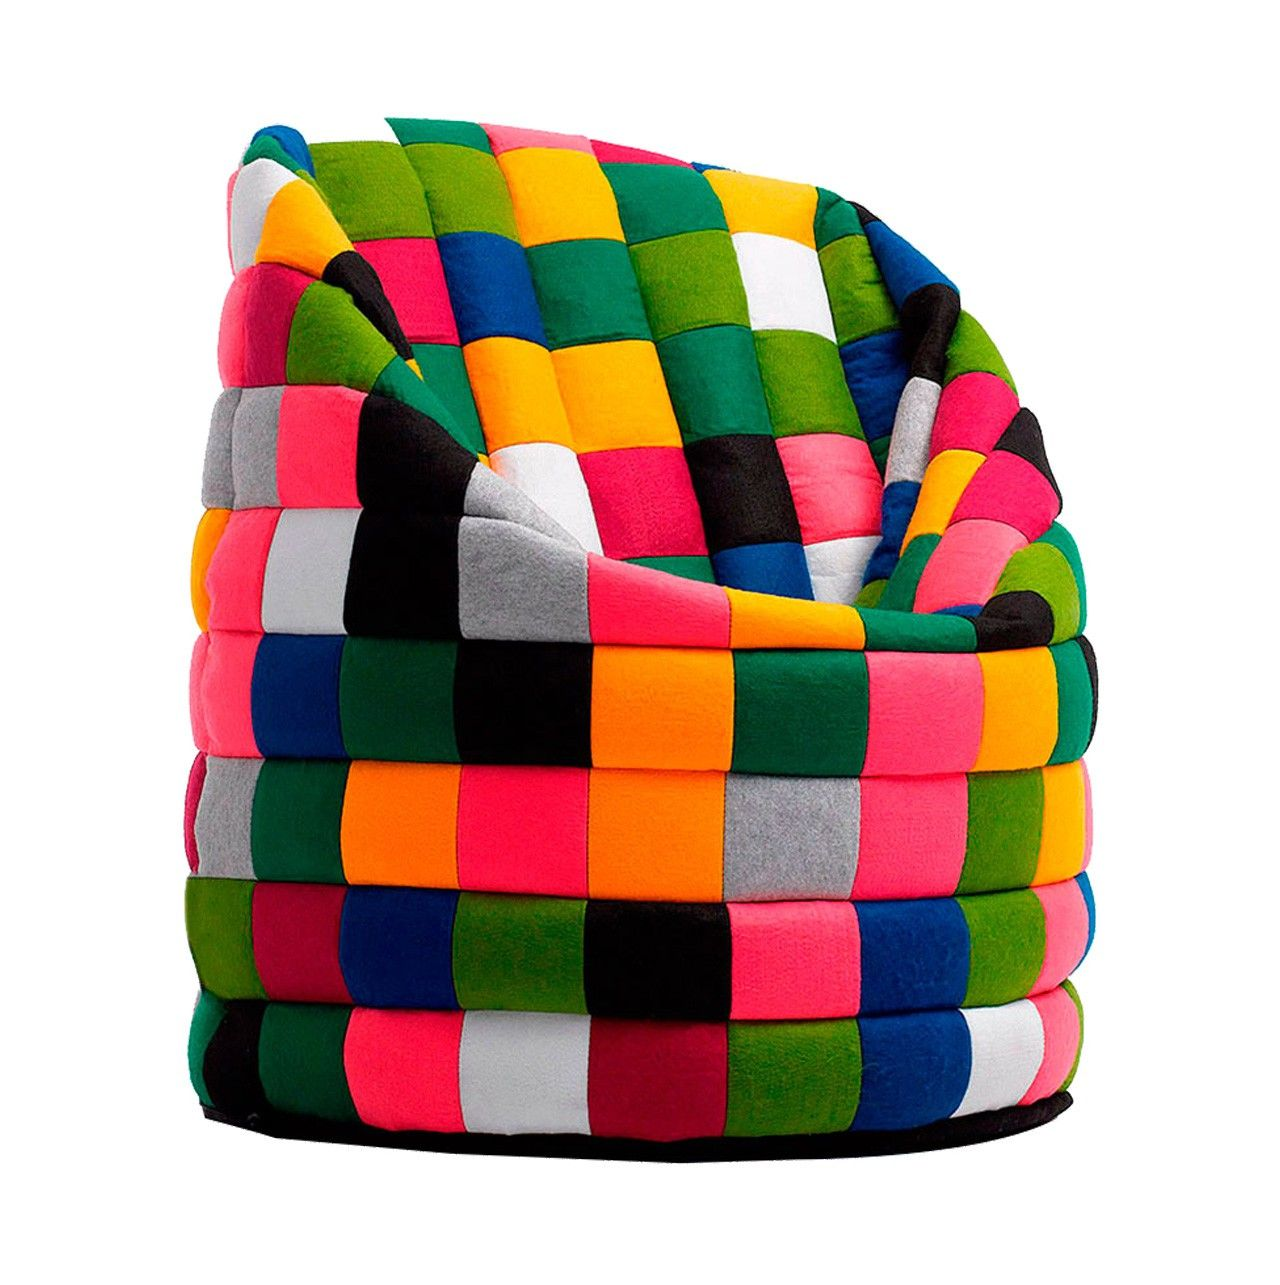 latest pops pouf in felt patchwork in the colors red blue multi colored greypurple in styrofoam. Black Bedroom Furniture Sets. Home Design Ideas